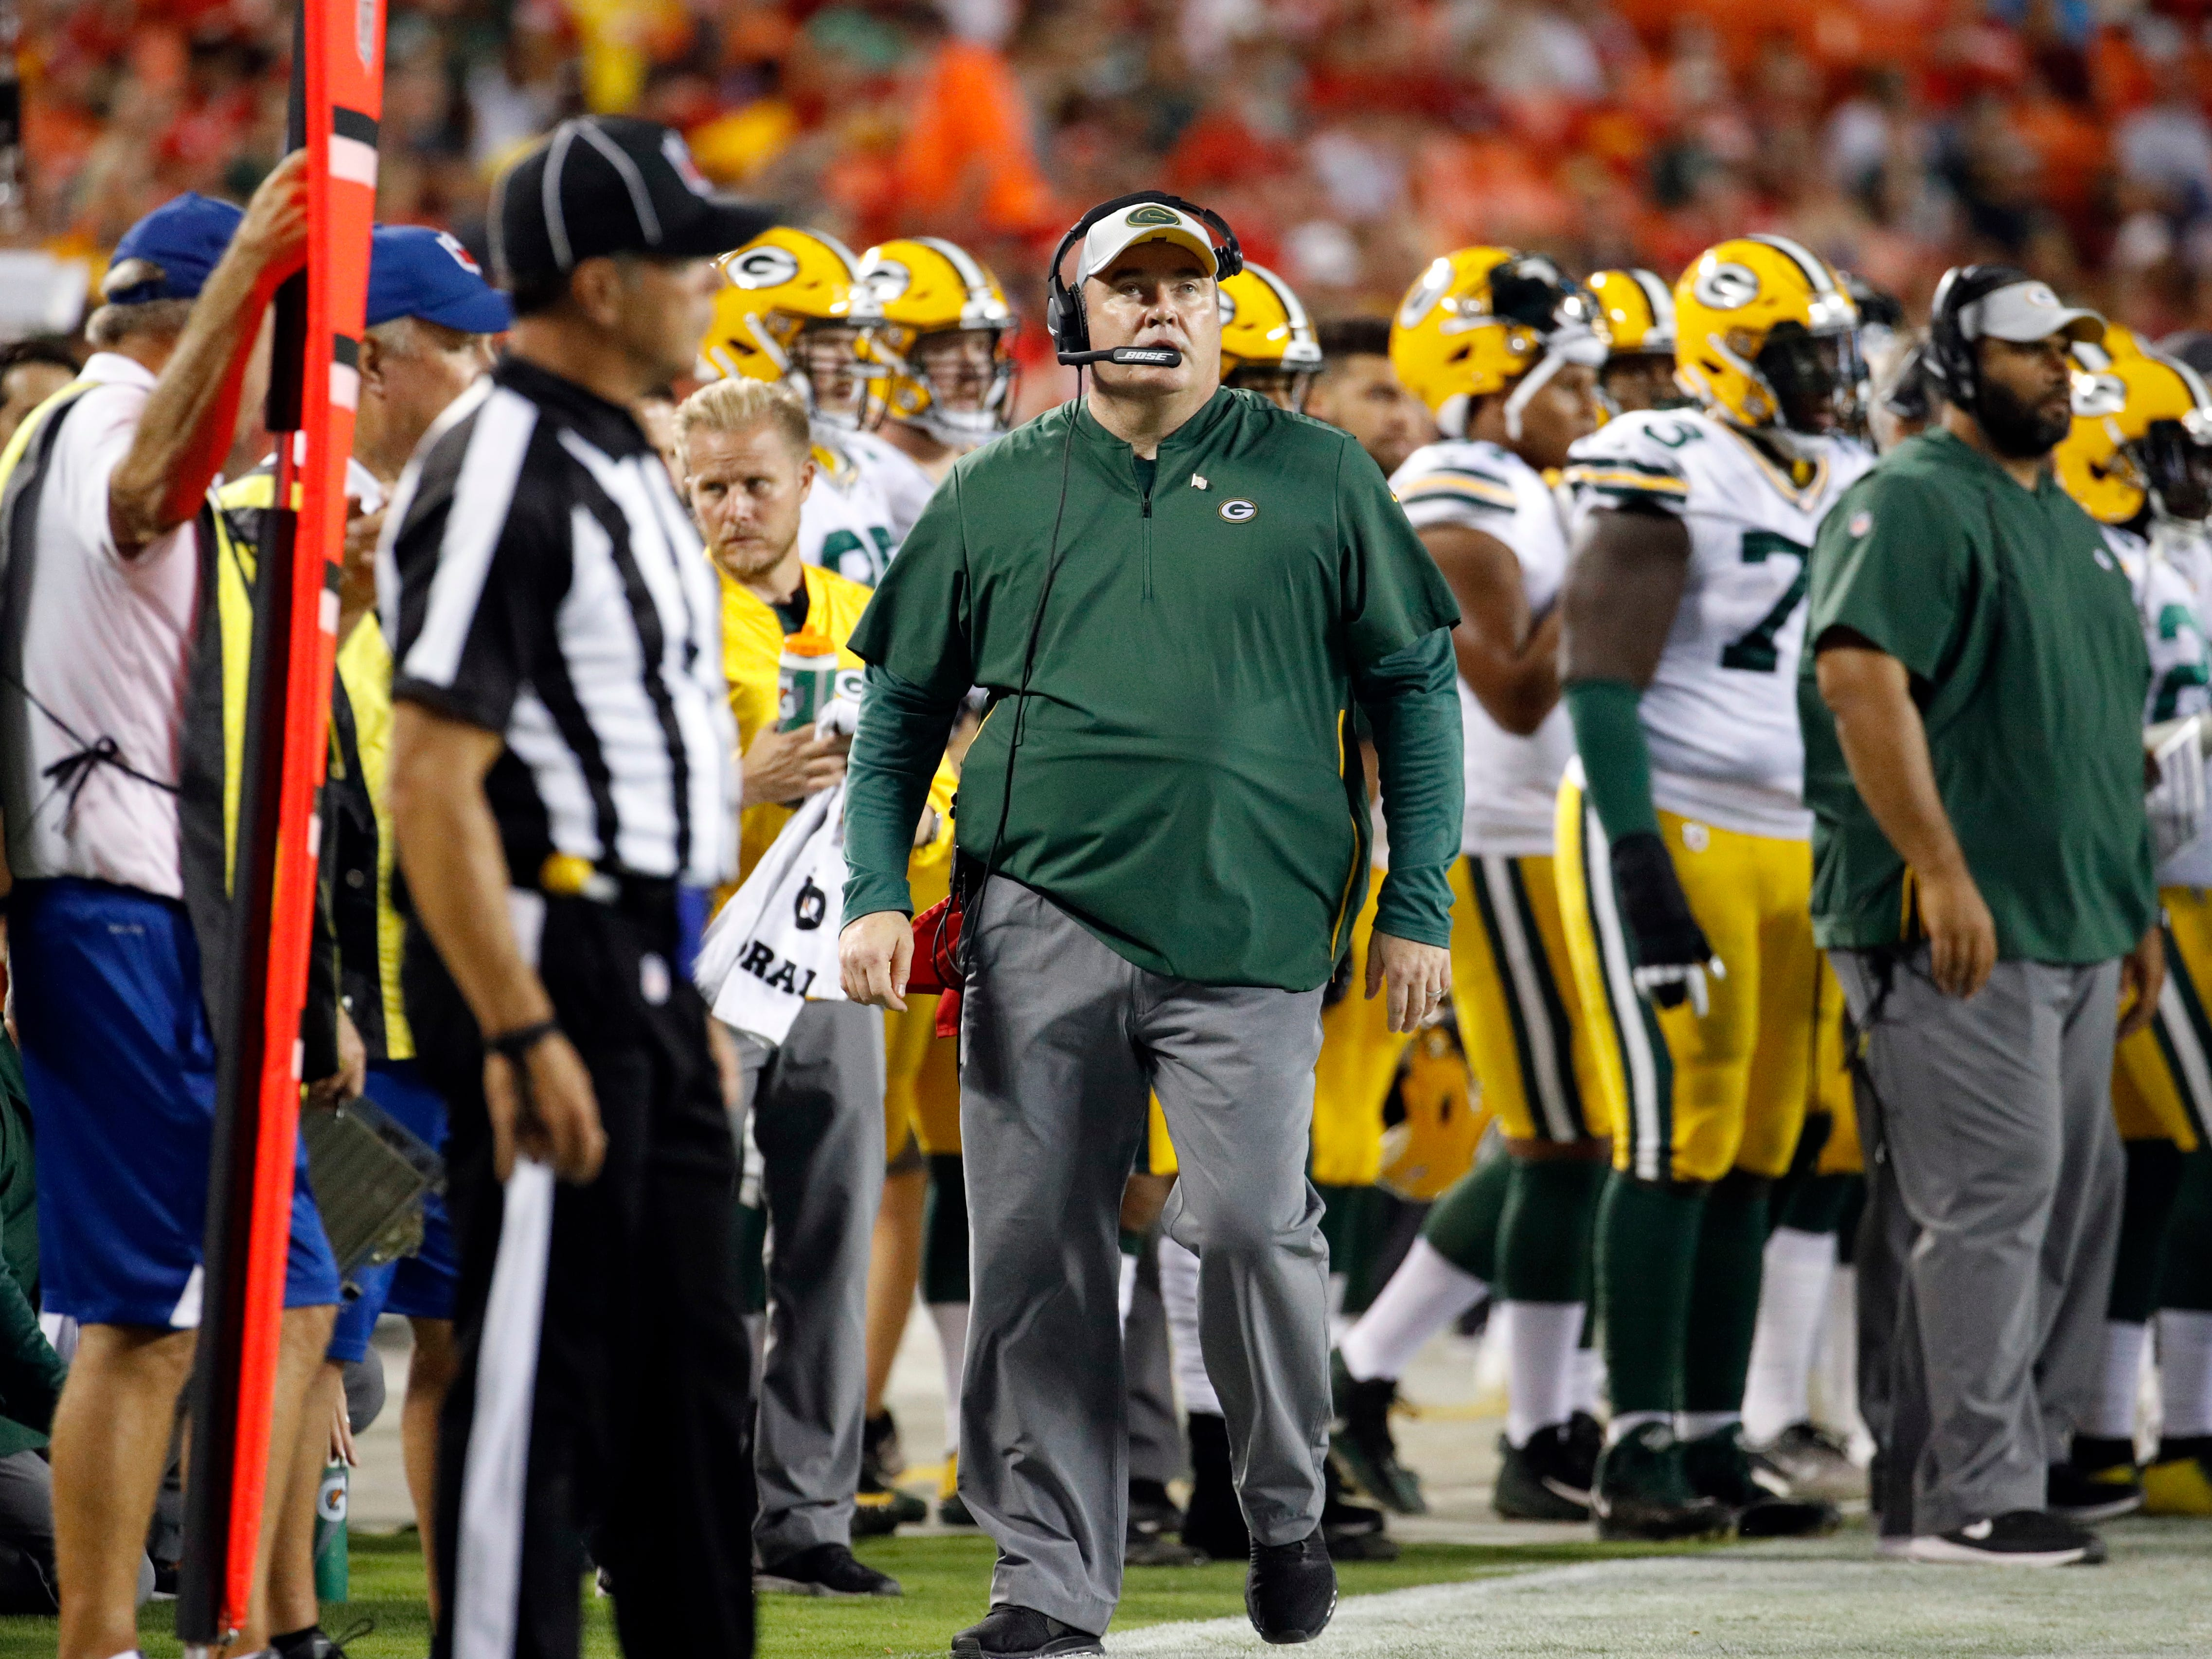 Green Bay Packers head coach Mike McCarthy looks at the score board during the first half of an NFL preseason football game against the Kansas City Chiefs in Kansas City, Mo., Thursday, Aug. 30, 2018.